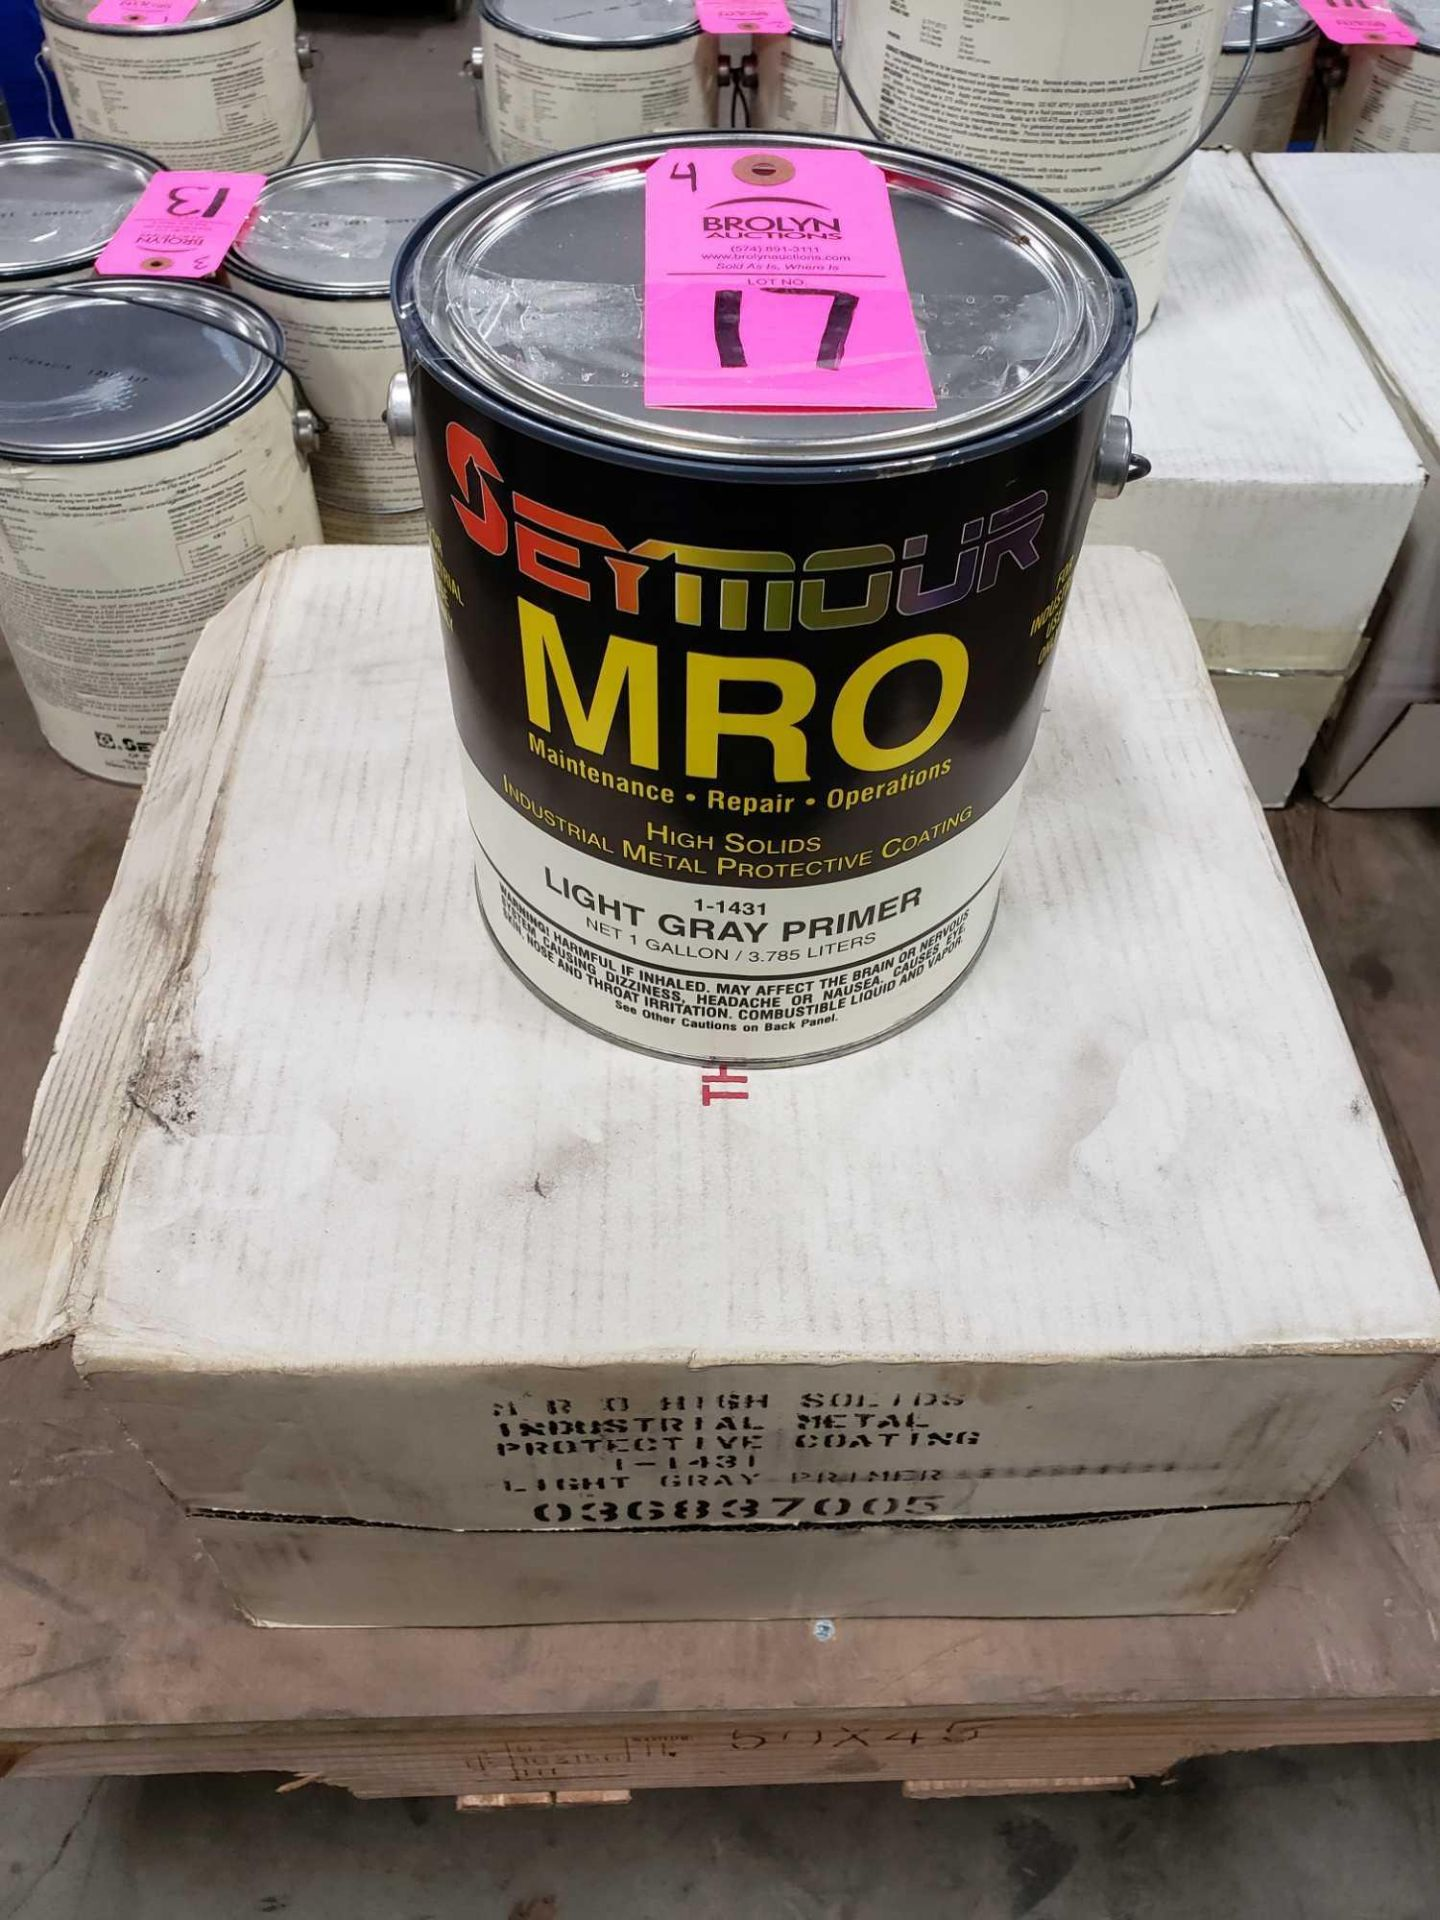 Lot 17 - Qty 4 - Seymour MRO paint Light Gray Primer model 1-1431. New as pictured.